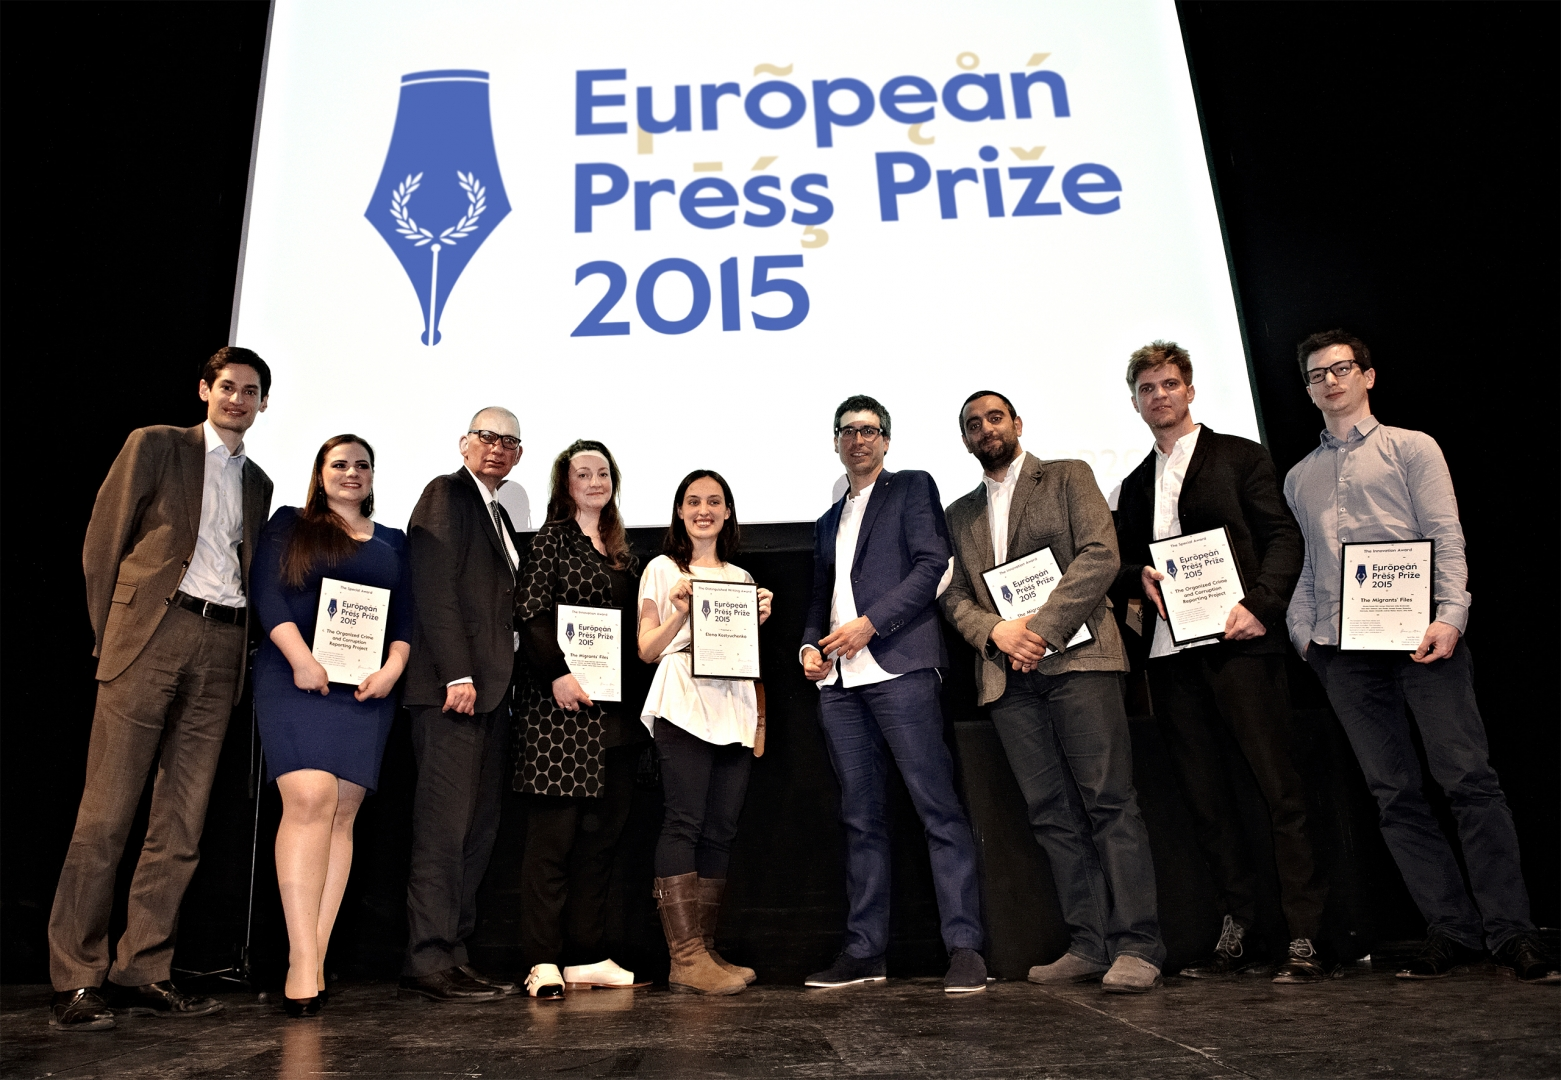 European Press Prize ceremony